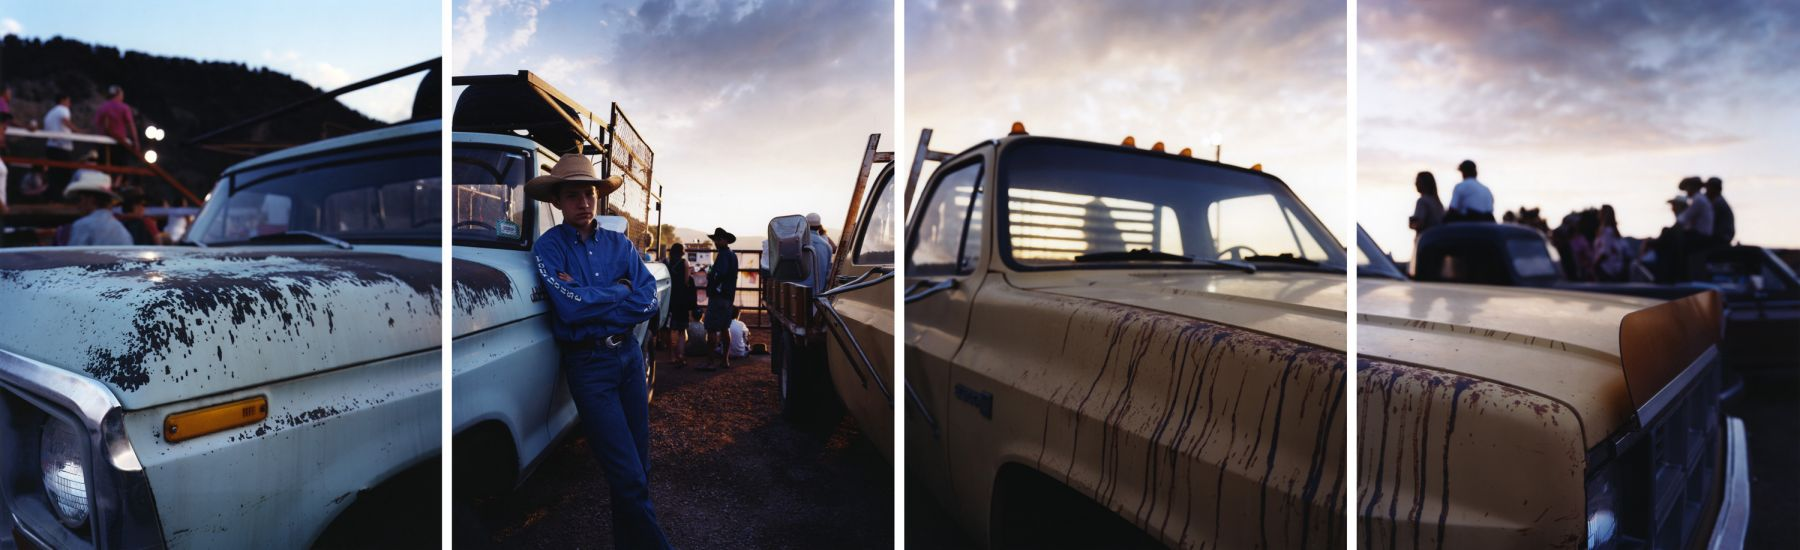 Two Trucks, 2008. Four-panel archival pigment print, available as 24 x 80 or 40 x 120 inches.